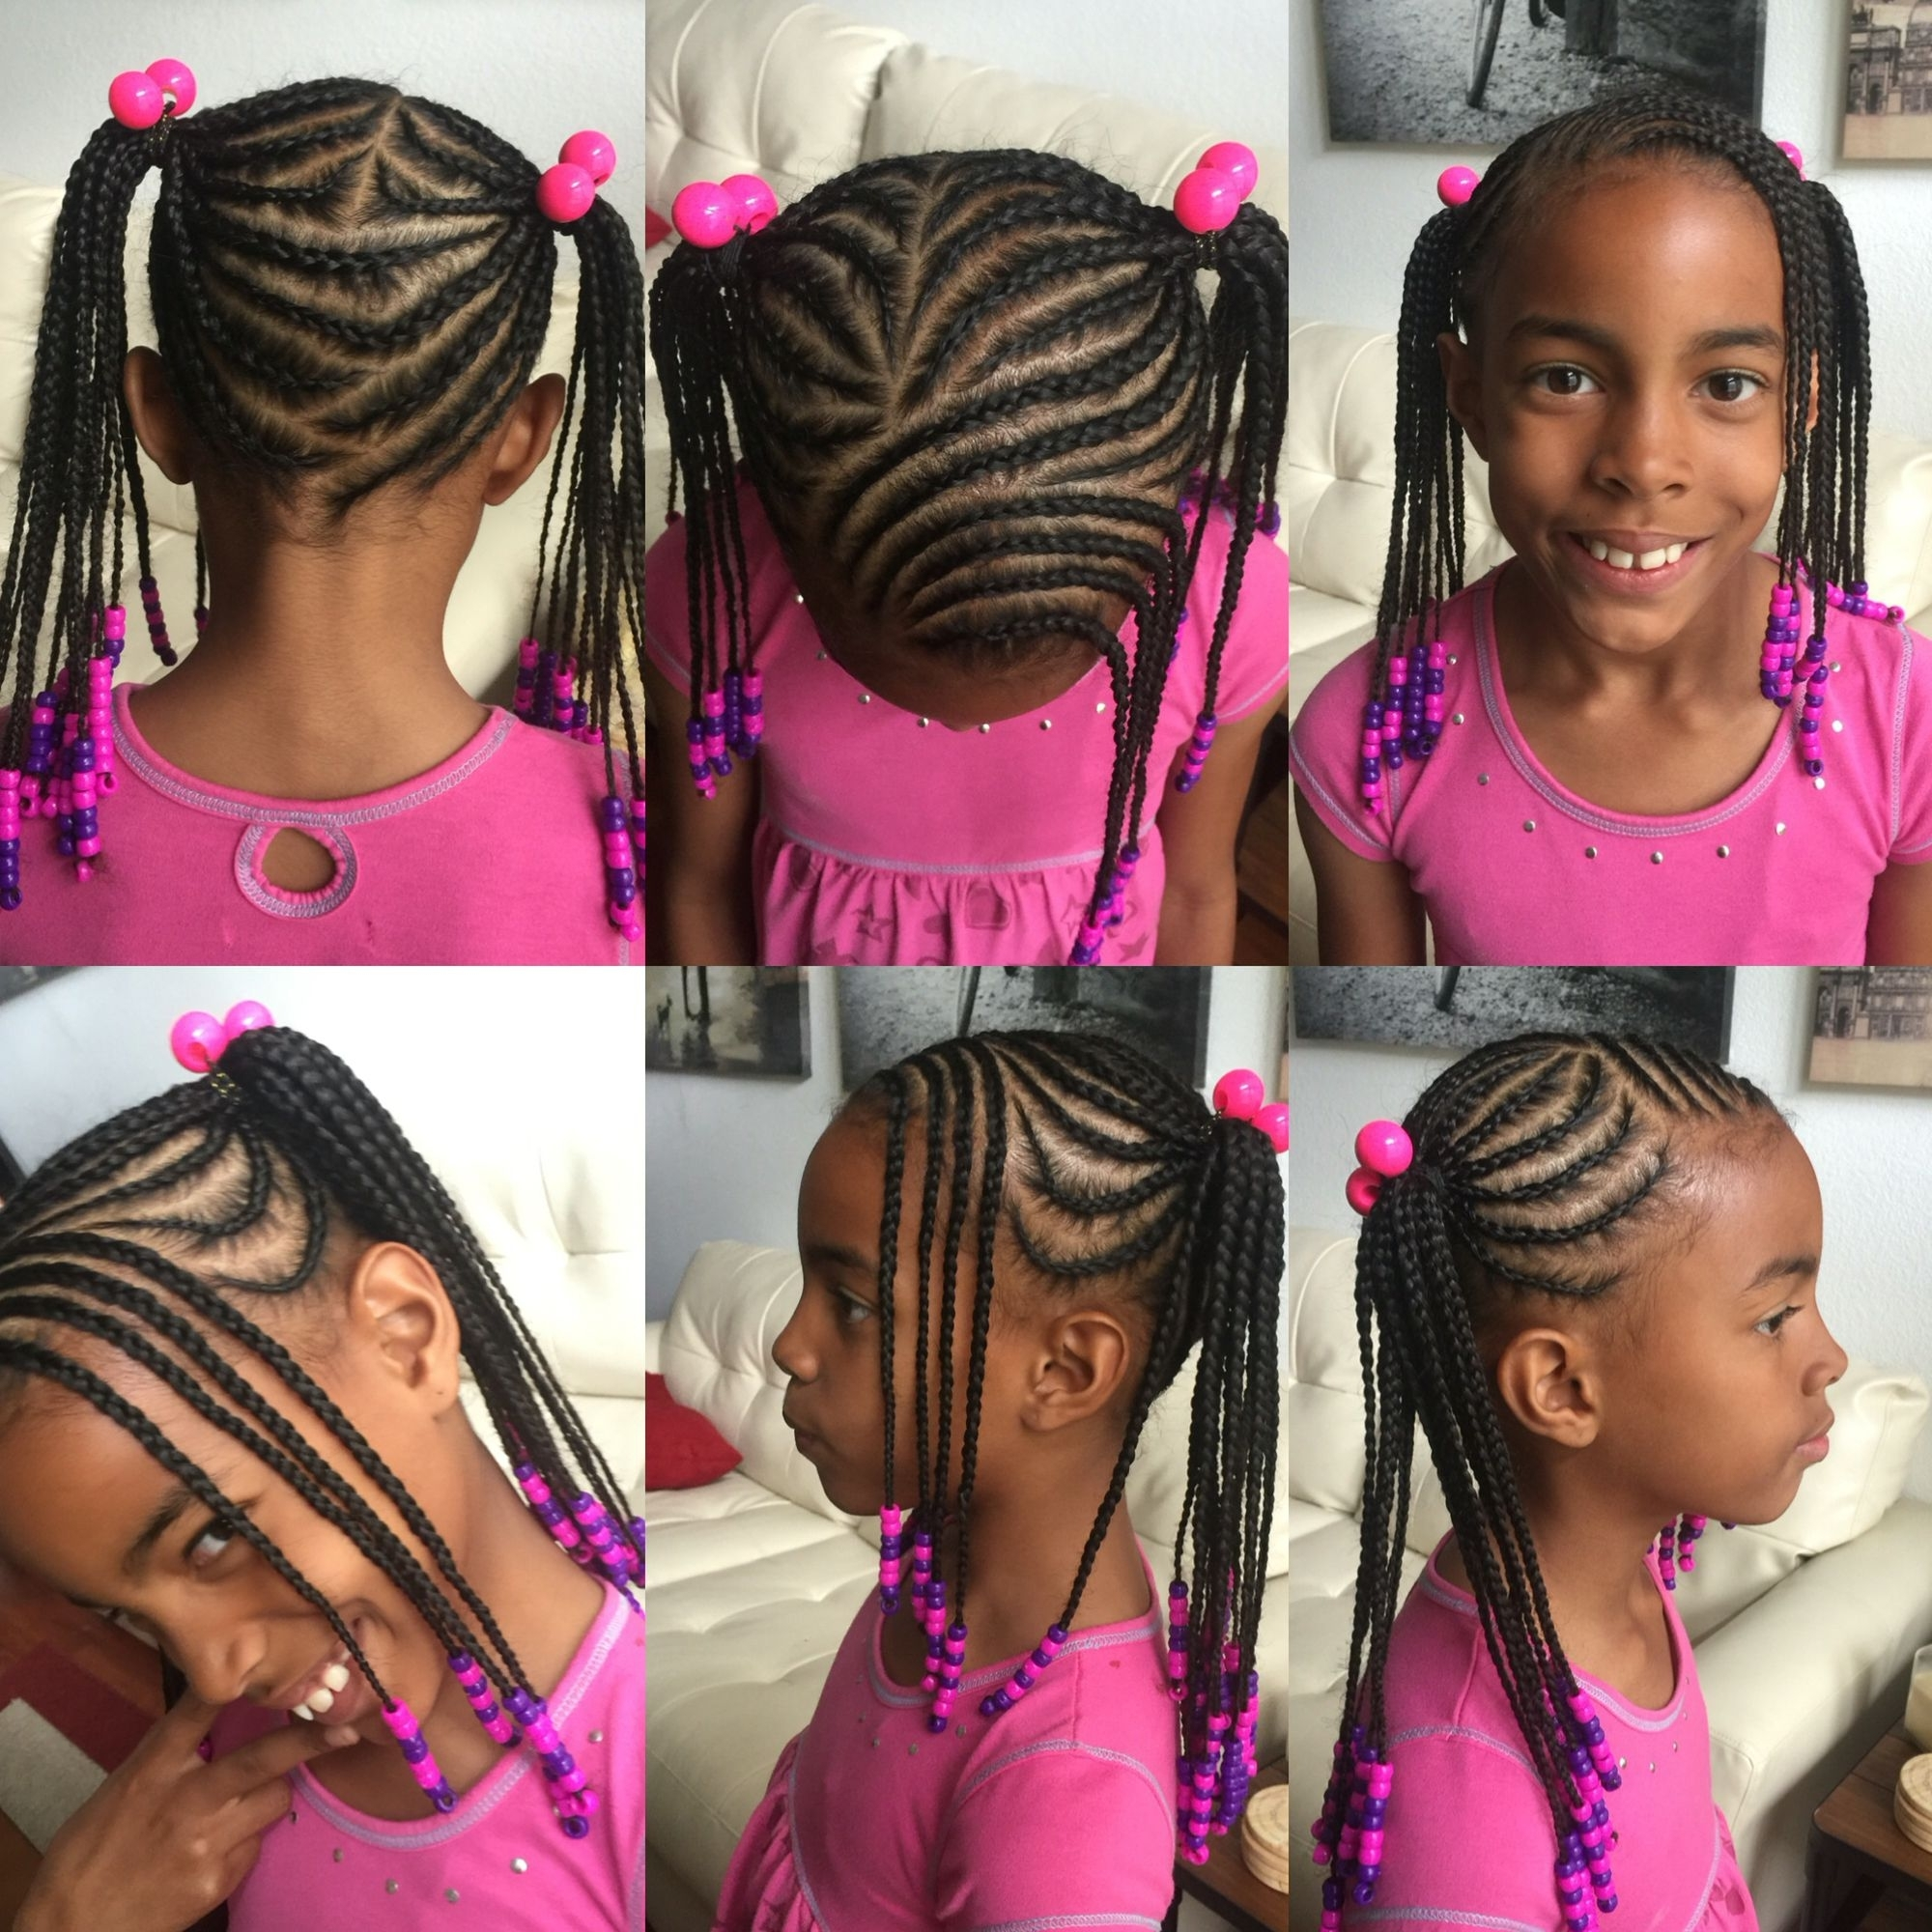 Kids Braided Hairstyle (View 12 of 20)